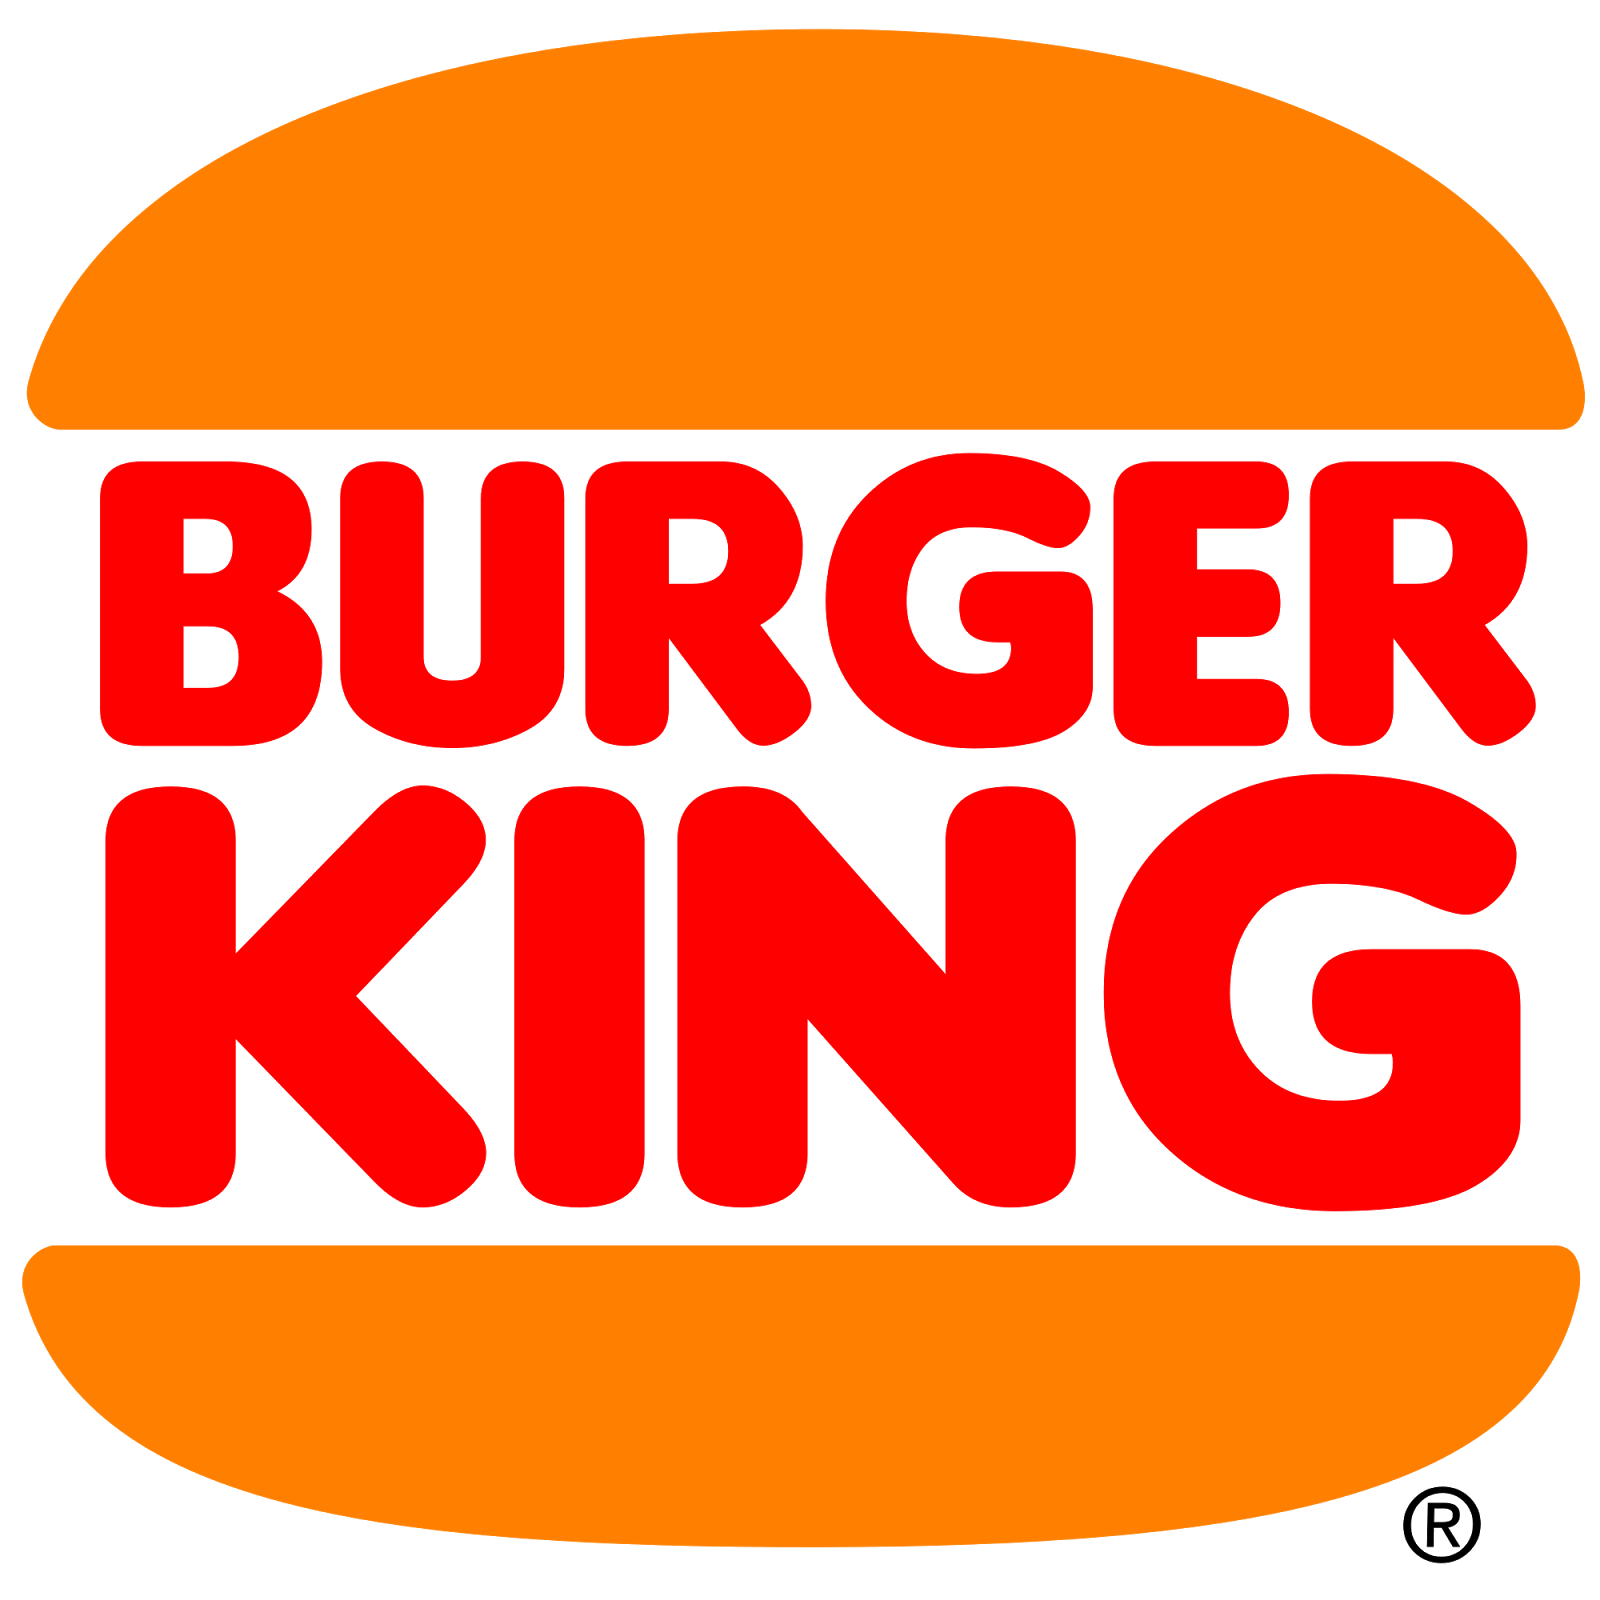 burger king - photo #11